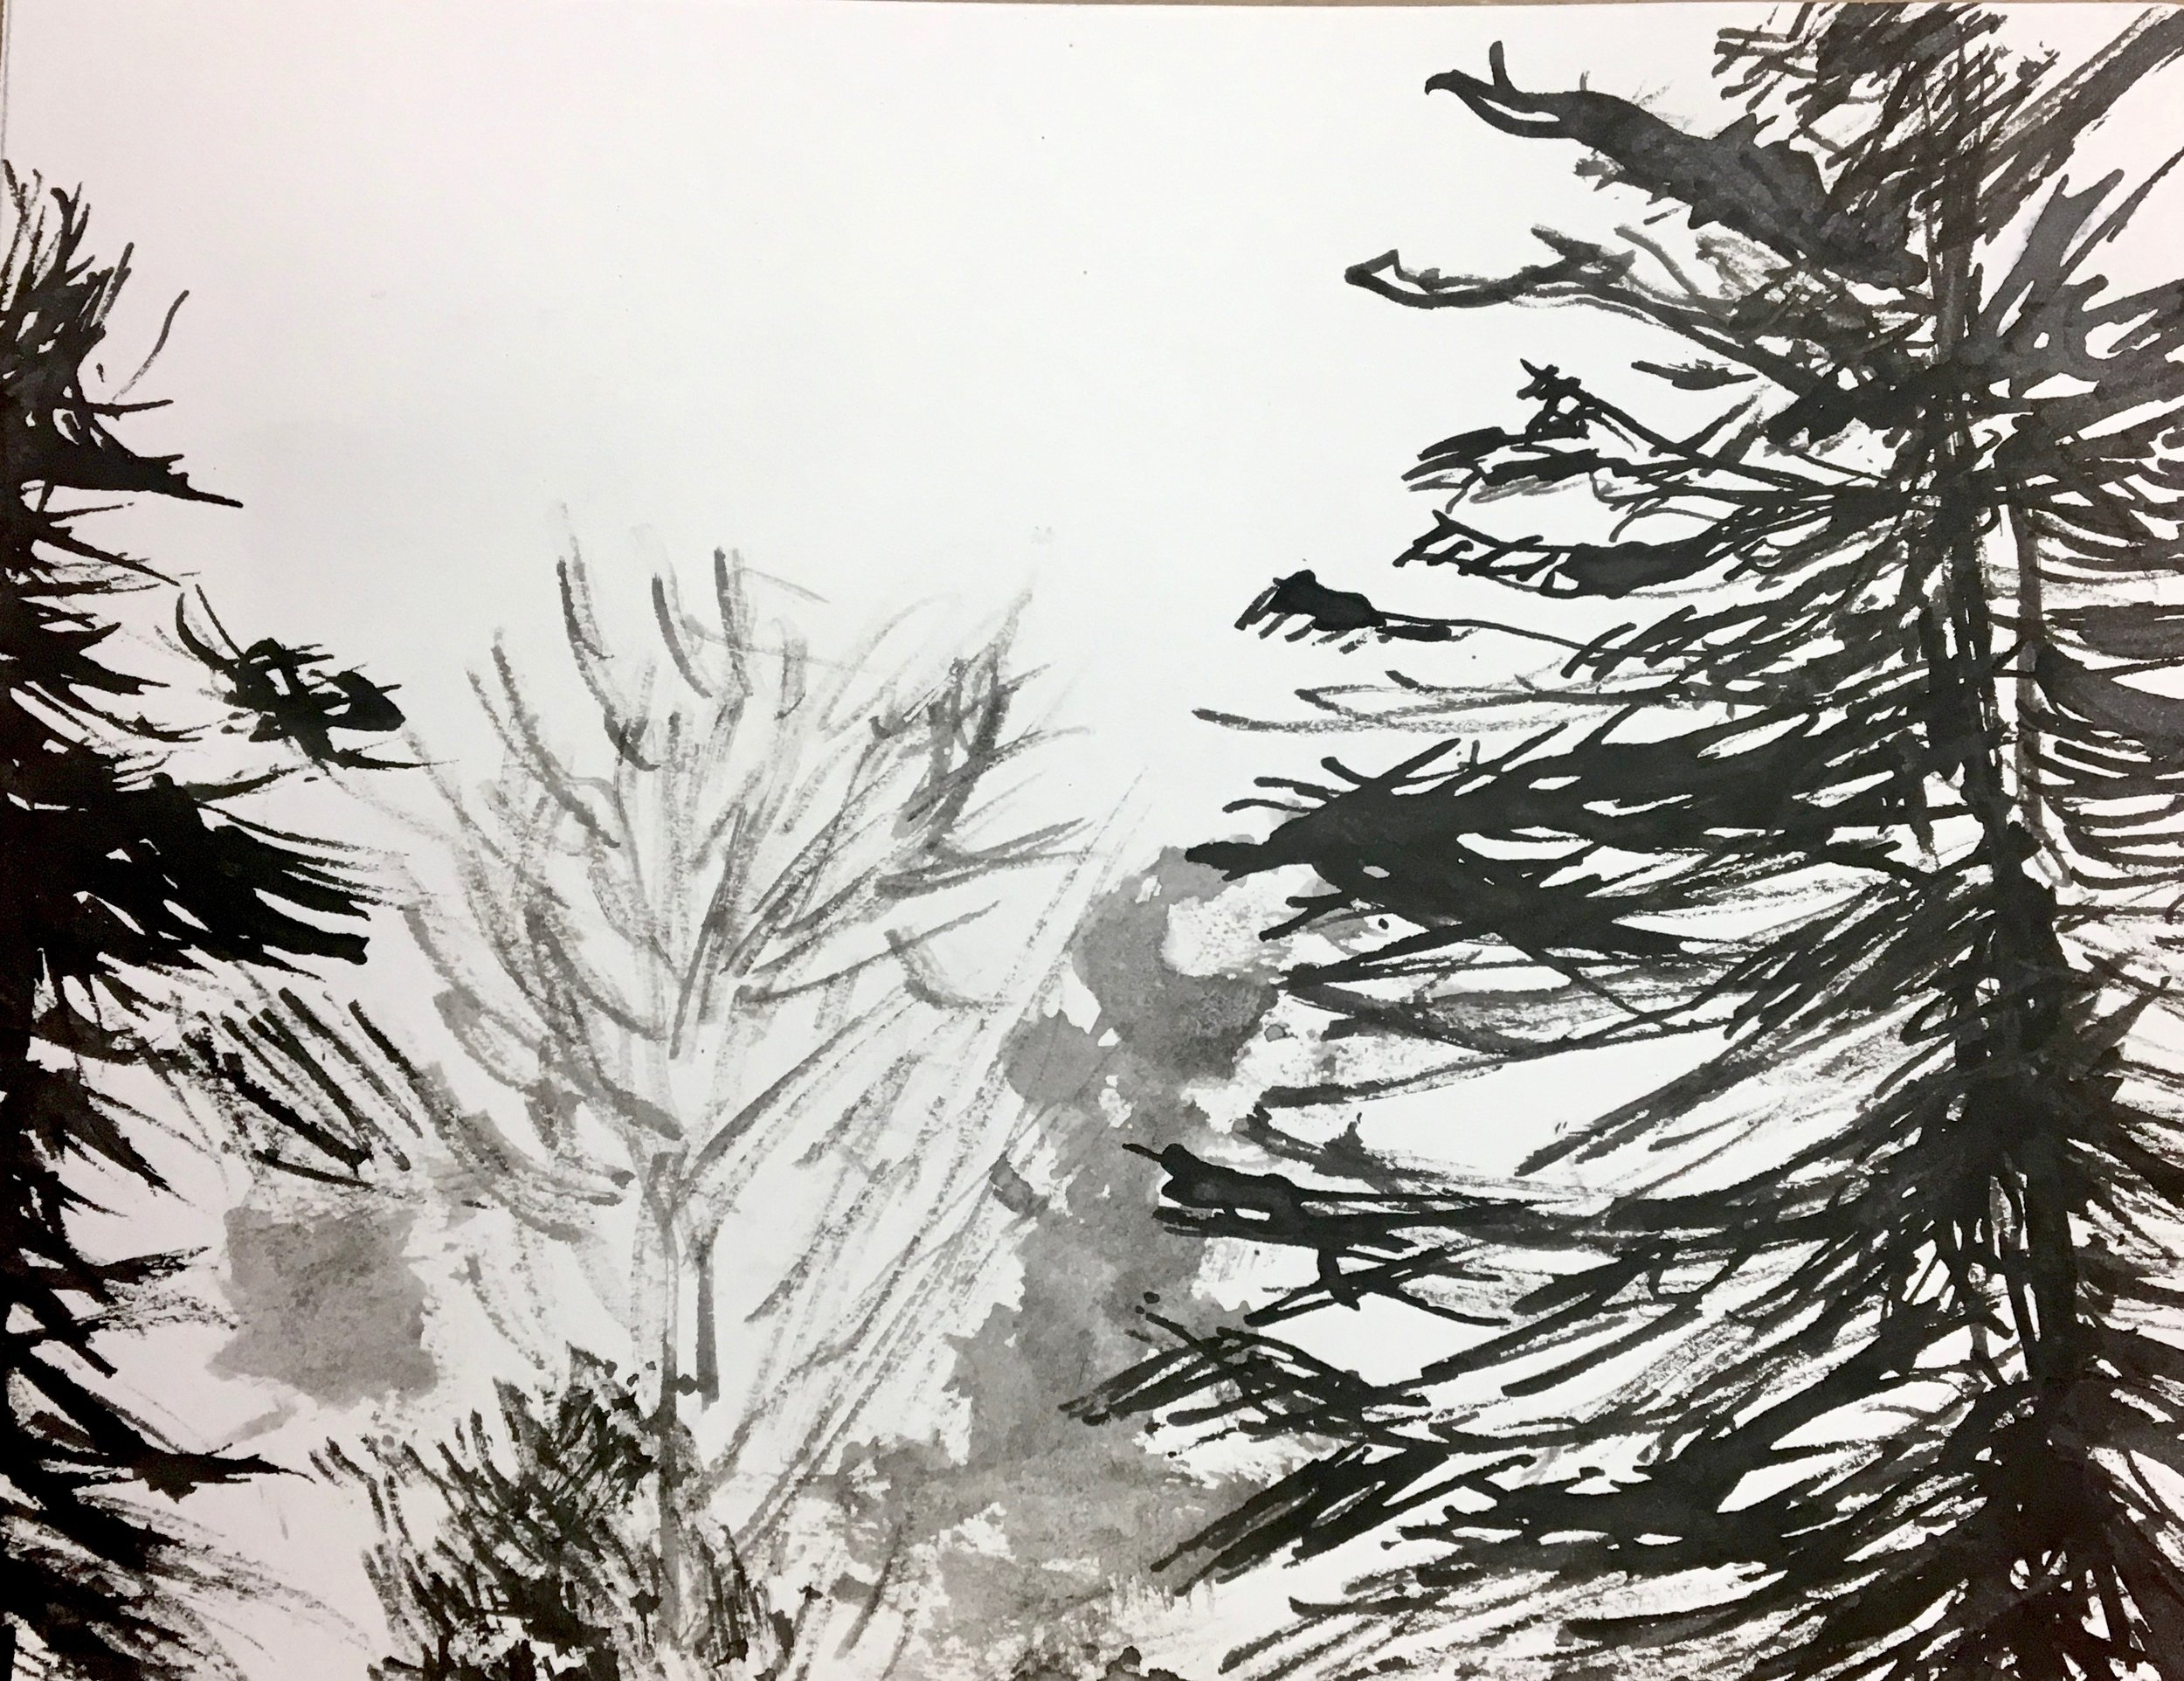 Ink drawing with sticks 5x7, 2018